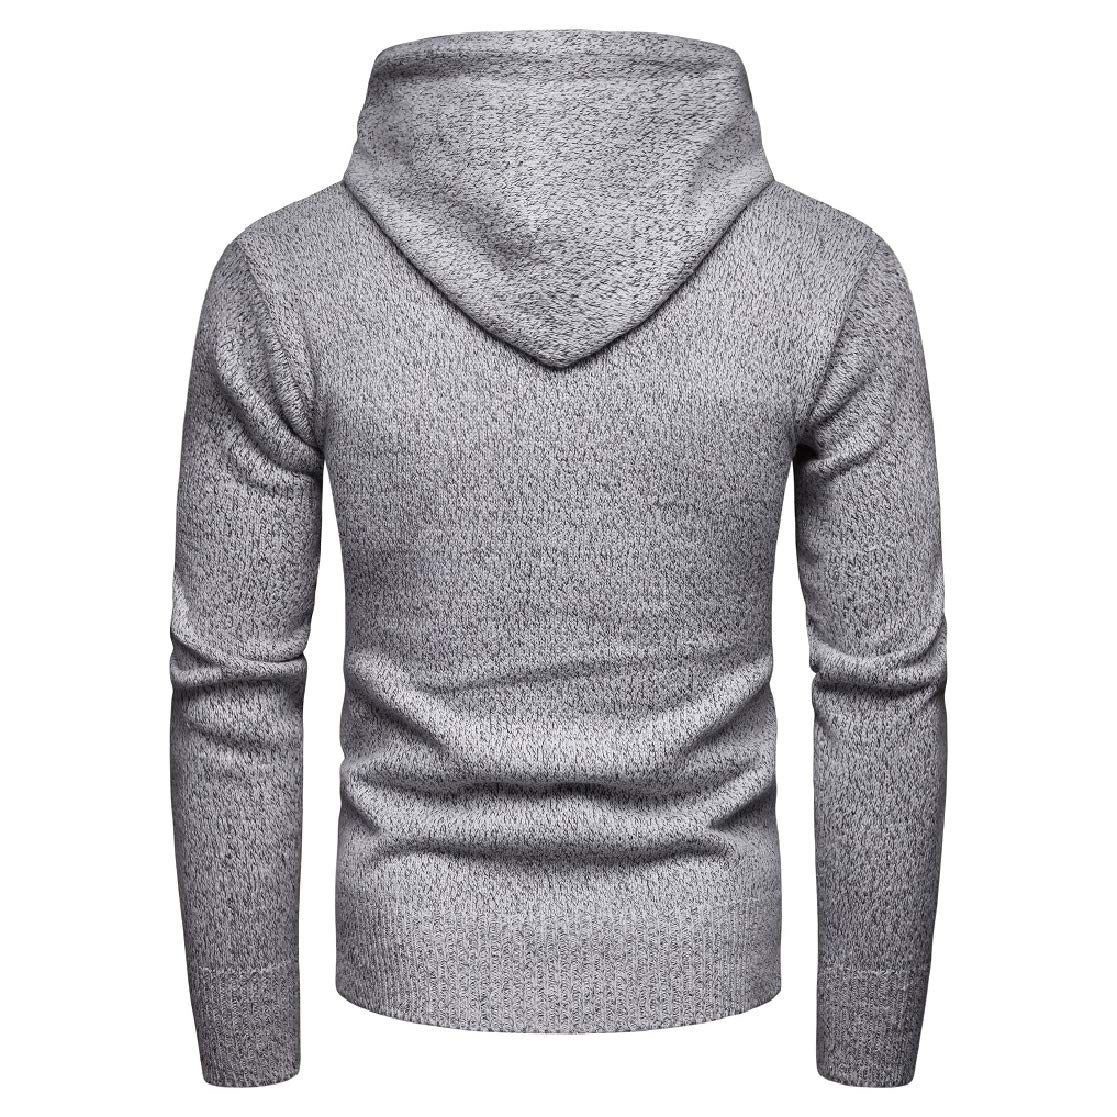 YUNY Mens Pure Color Pullover Cargo Pocket Knitwear Hooded Long Sleeve Sweaters Light Grey XL